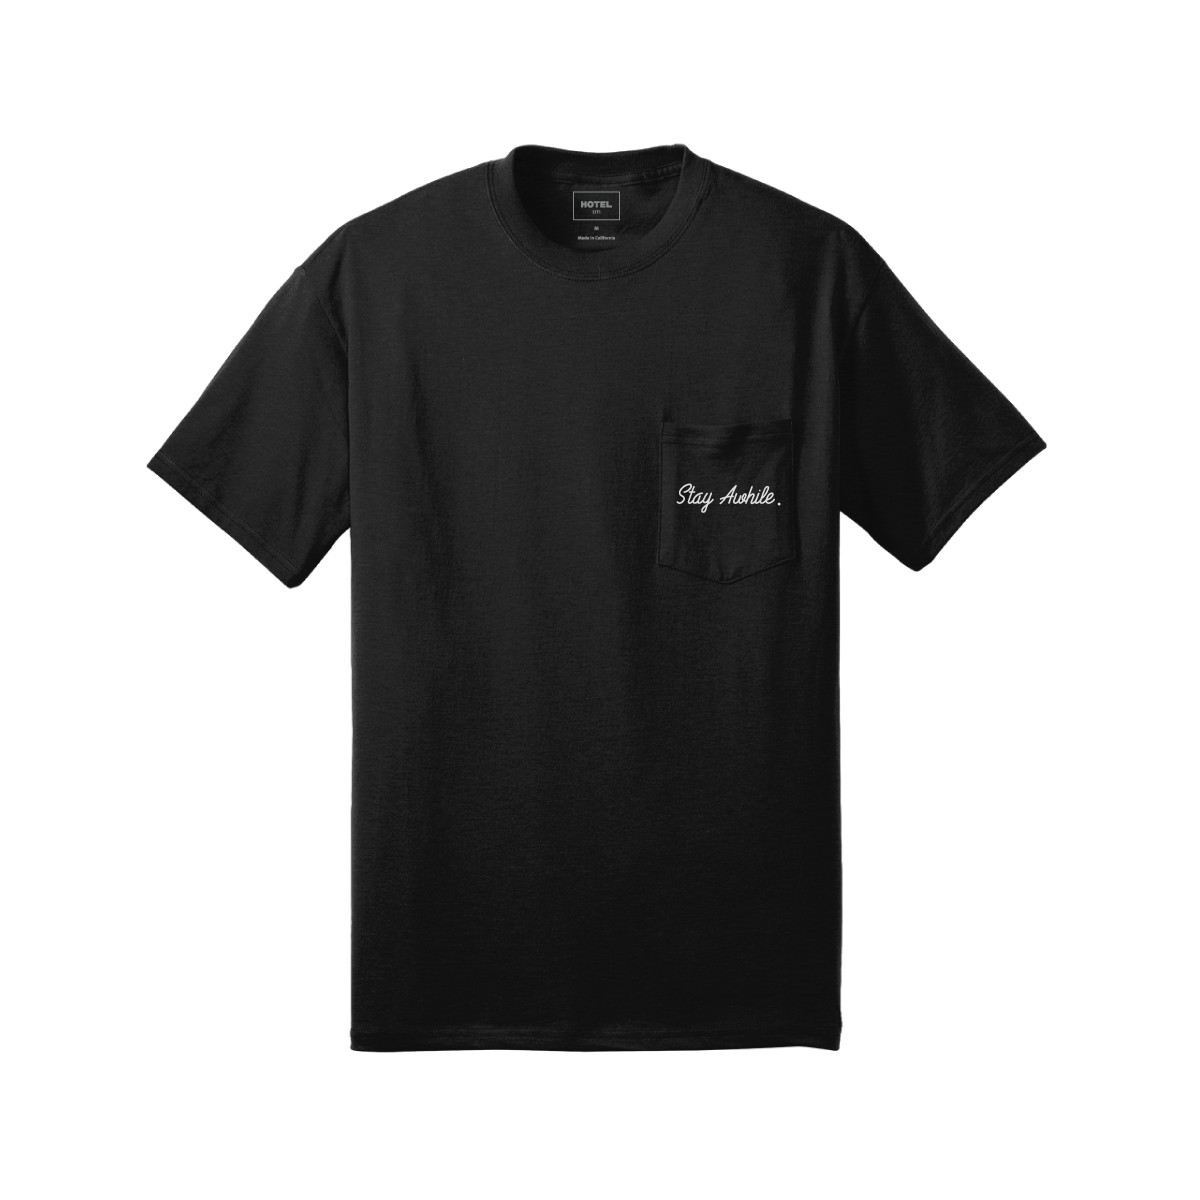 HOTEL 1171 StayAwhile Tee - Black